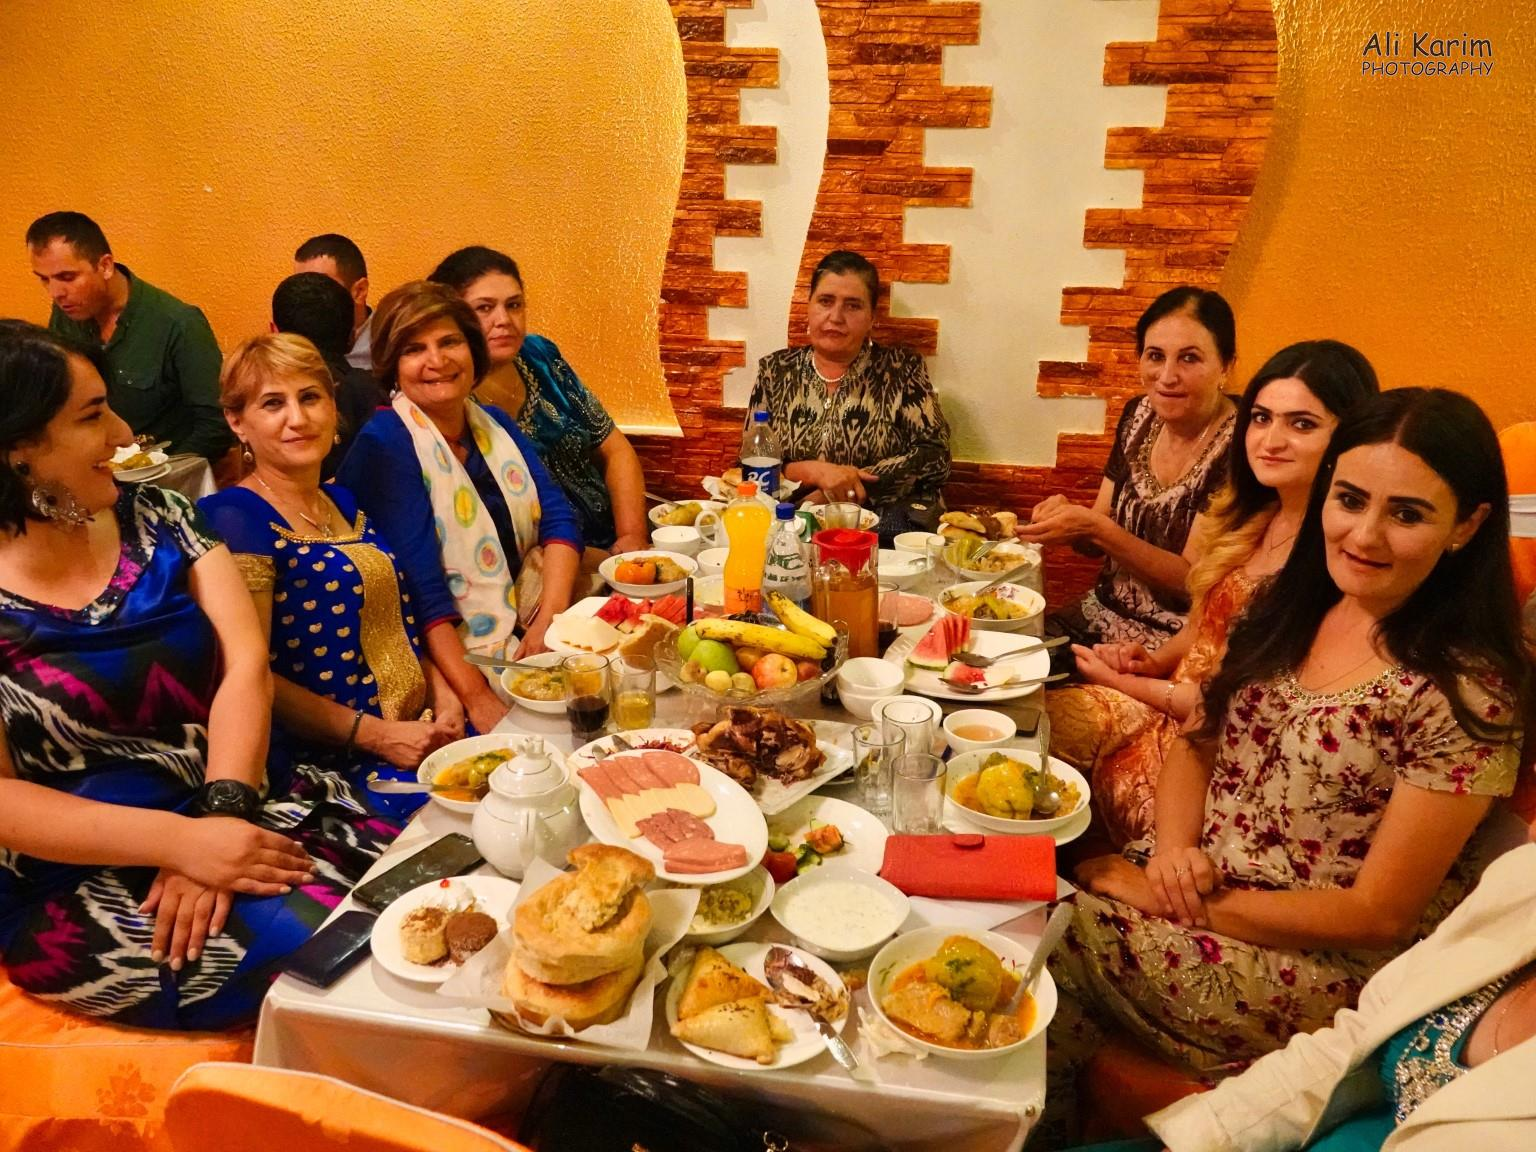 Onto Khorog, Tajikistan, Dilshad with Gulguncha on her right, at their table. Notice how the table is overflowing with food